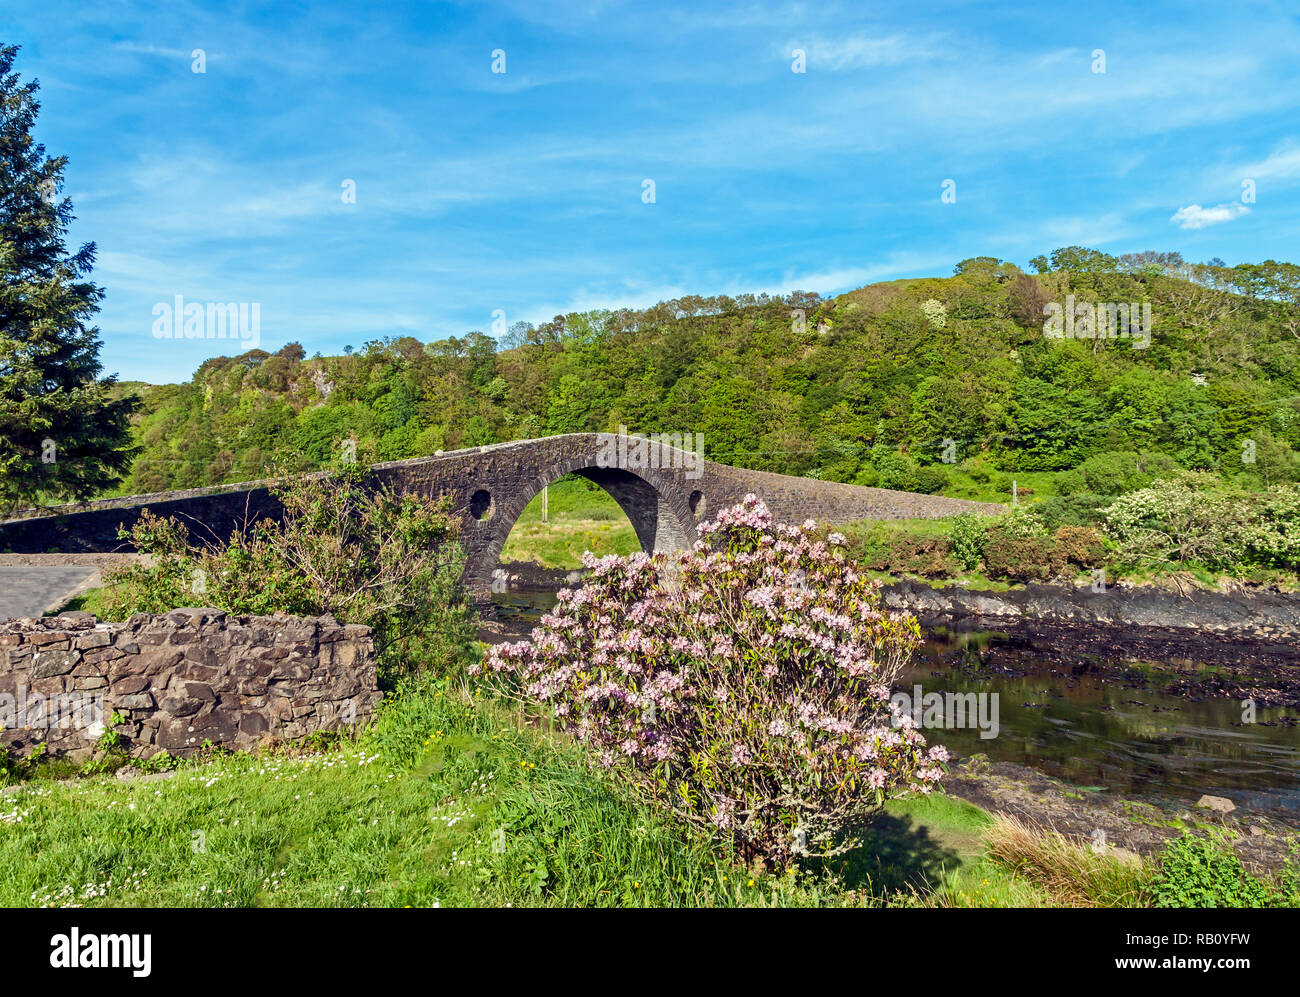 Rhododendron flowers in front of the Clachan Bridge (Atlantic Bridge) linking the Scottish mainland with the Isle of Seil south of Oban Scotland UK - Stock Image